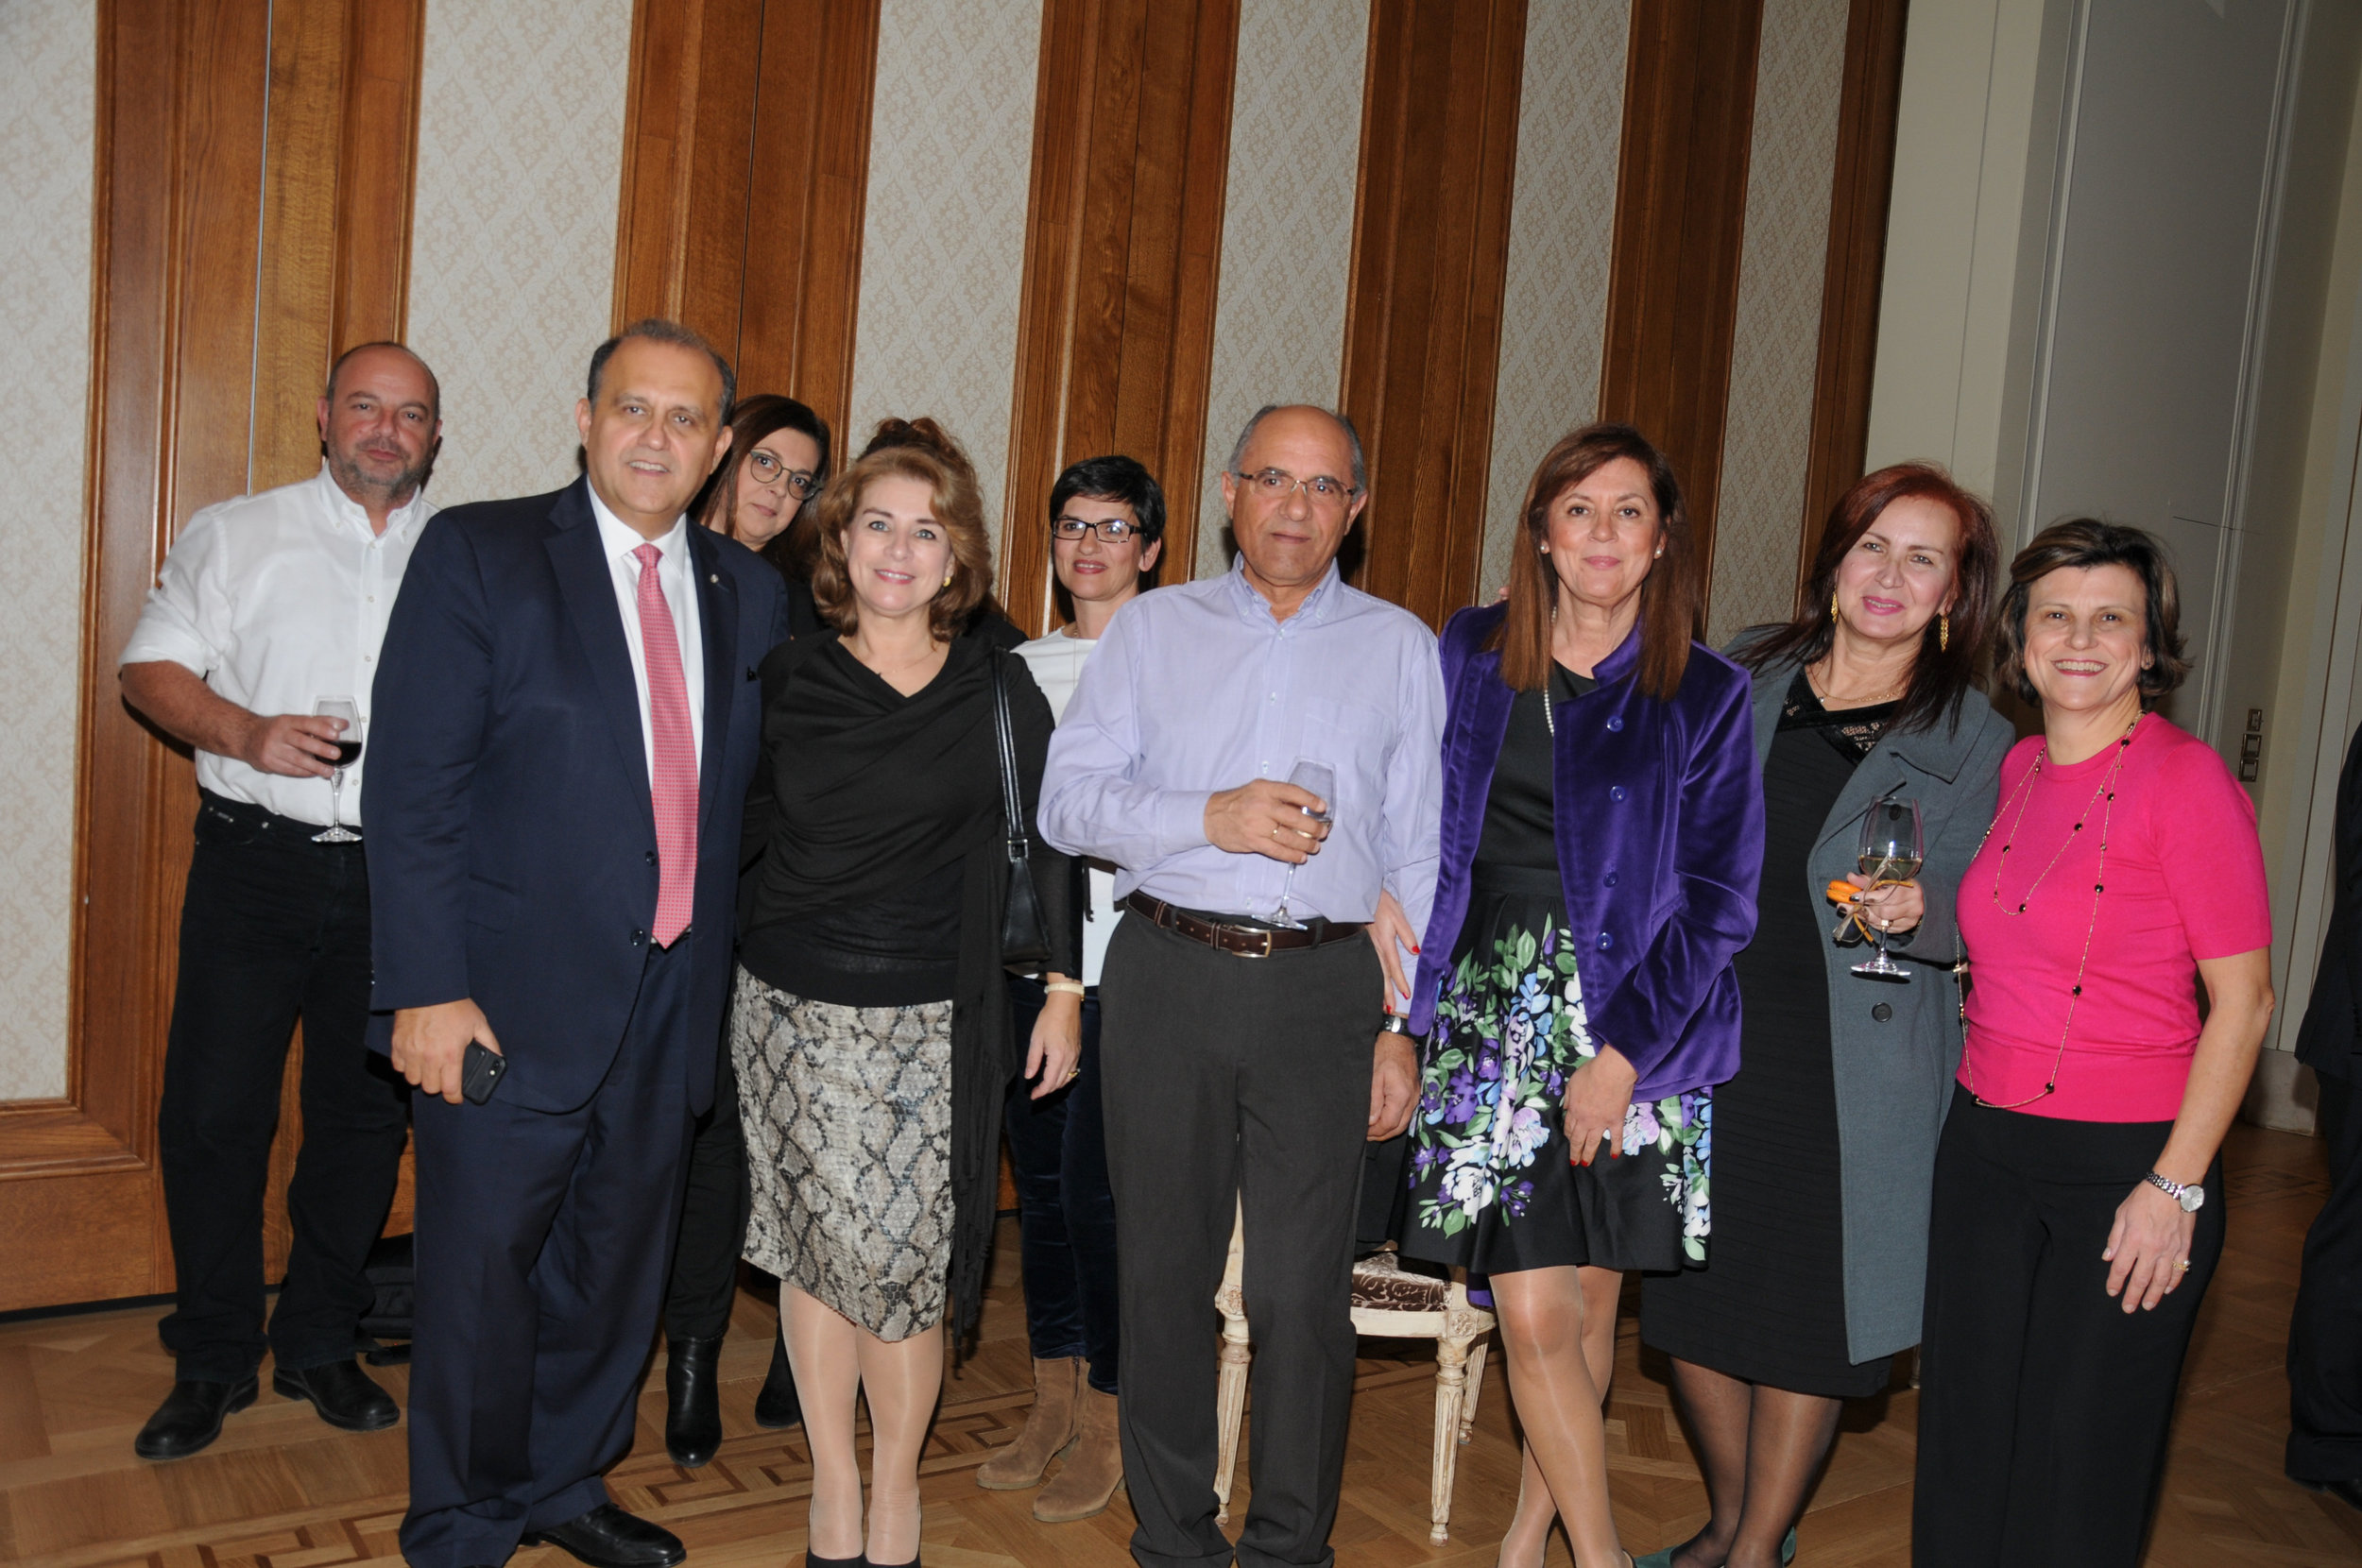 President Larigakis With Guests At The Reception